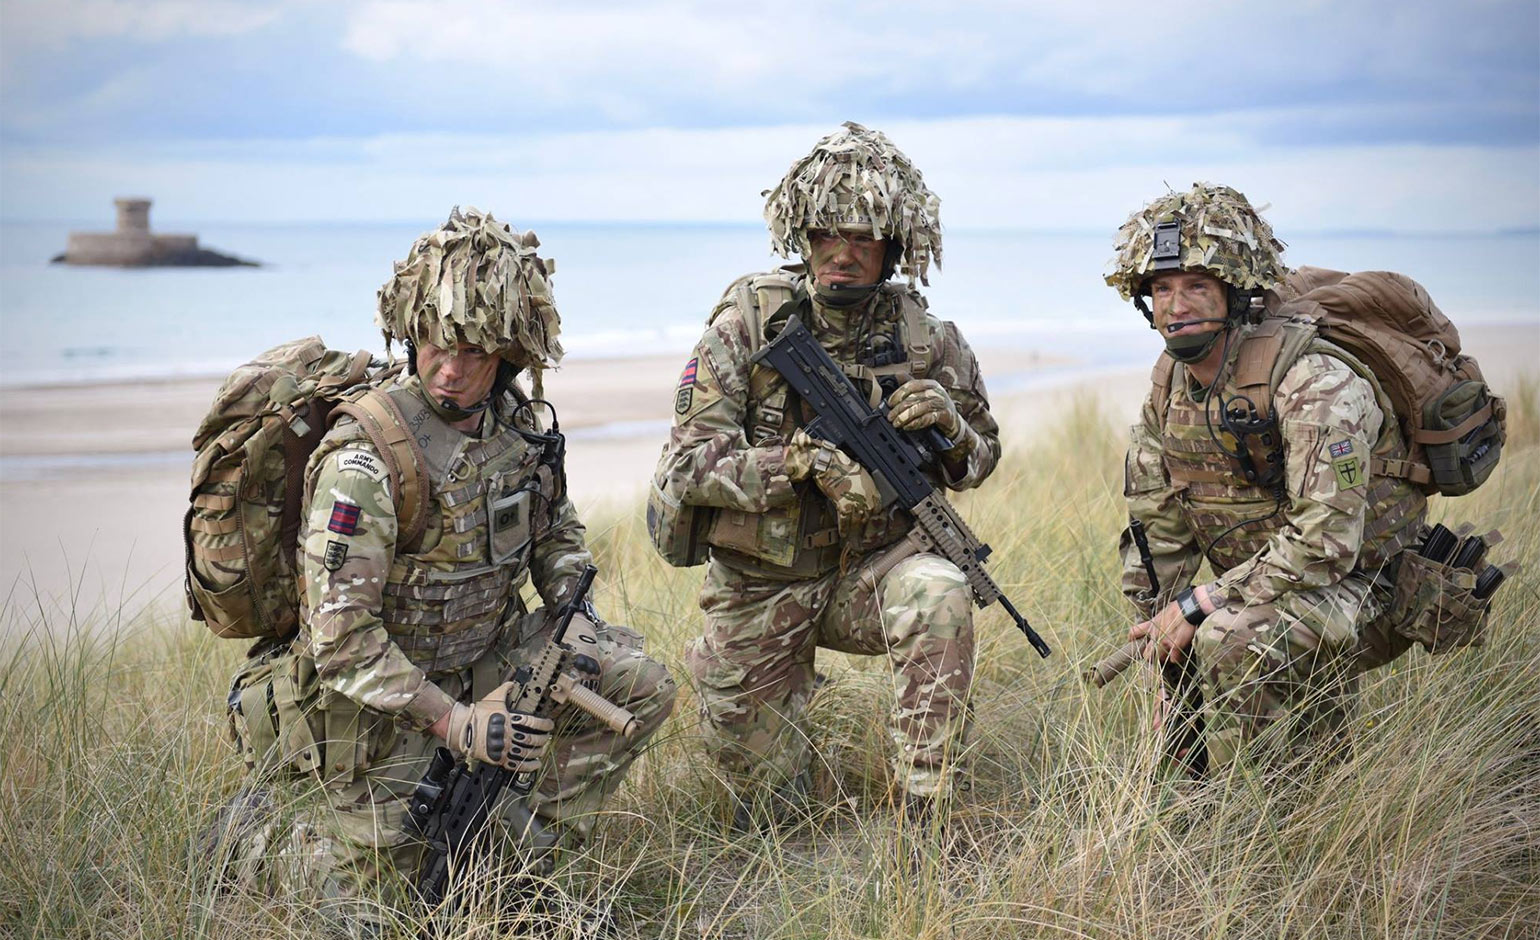 dating uk british army Forcespenpalscouk, the original british armed forces penpals website offering  support, dating and social networking.